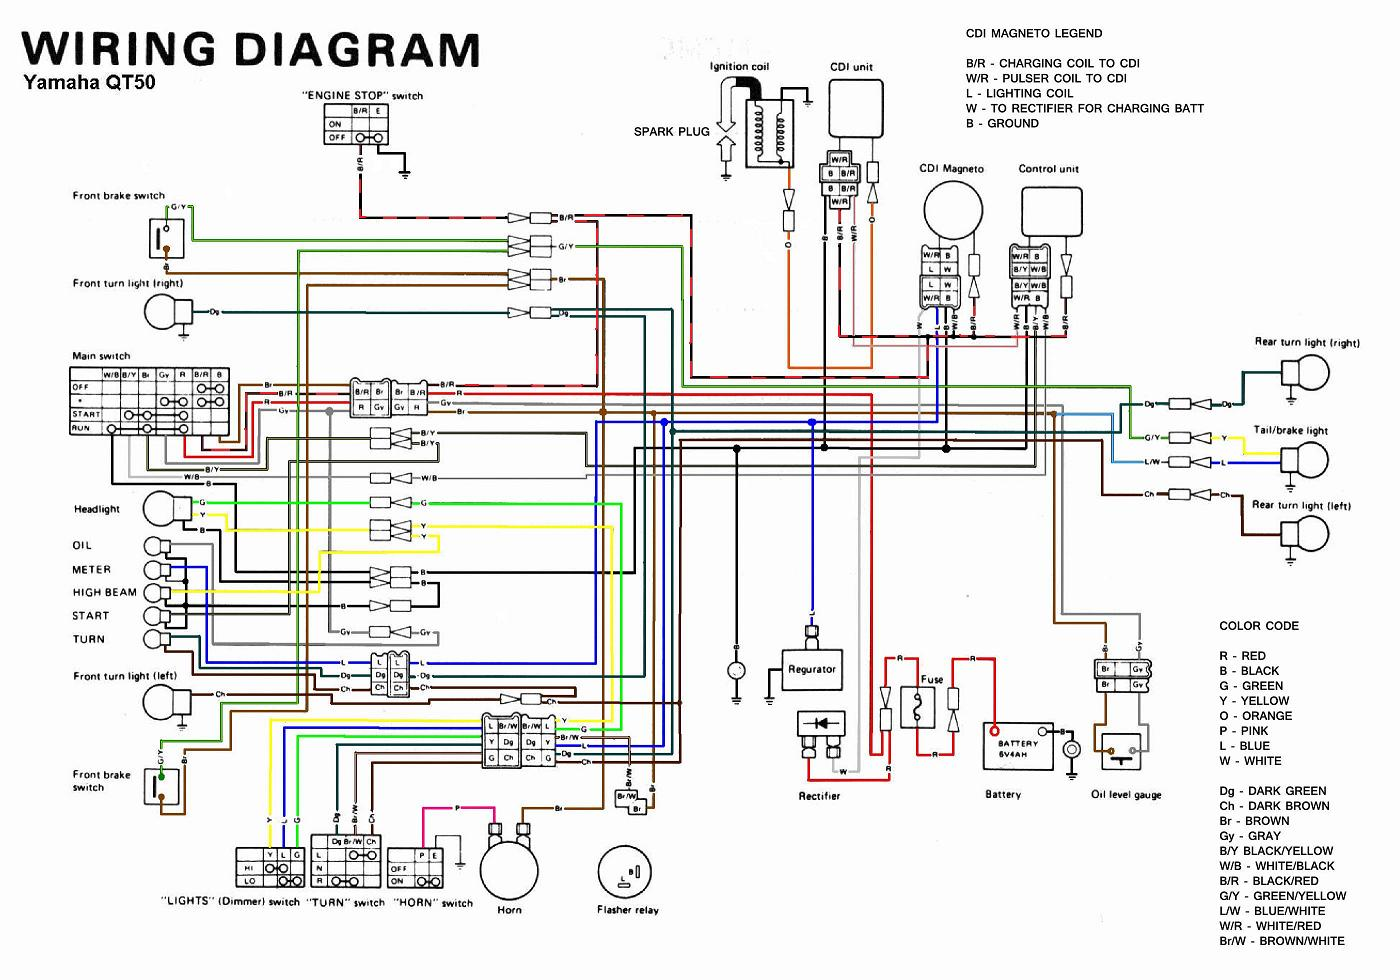 Yamaha QT50 Wiring Diagram yamaha qt50 wiring diagram yamaha qt50 luvin and other nopeds cdi wiring diagram honda 150 at bayanpartner.co